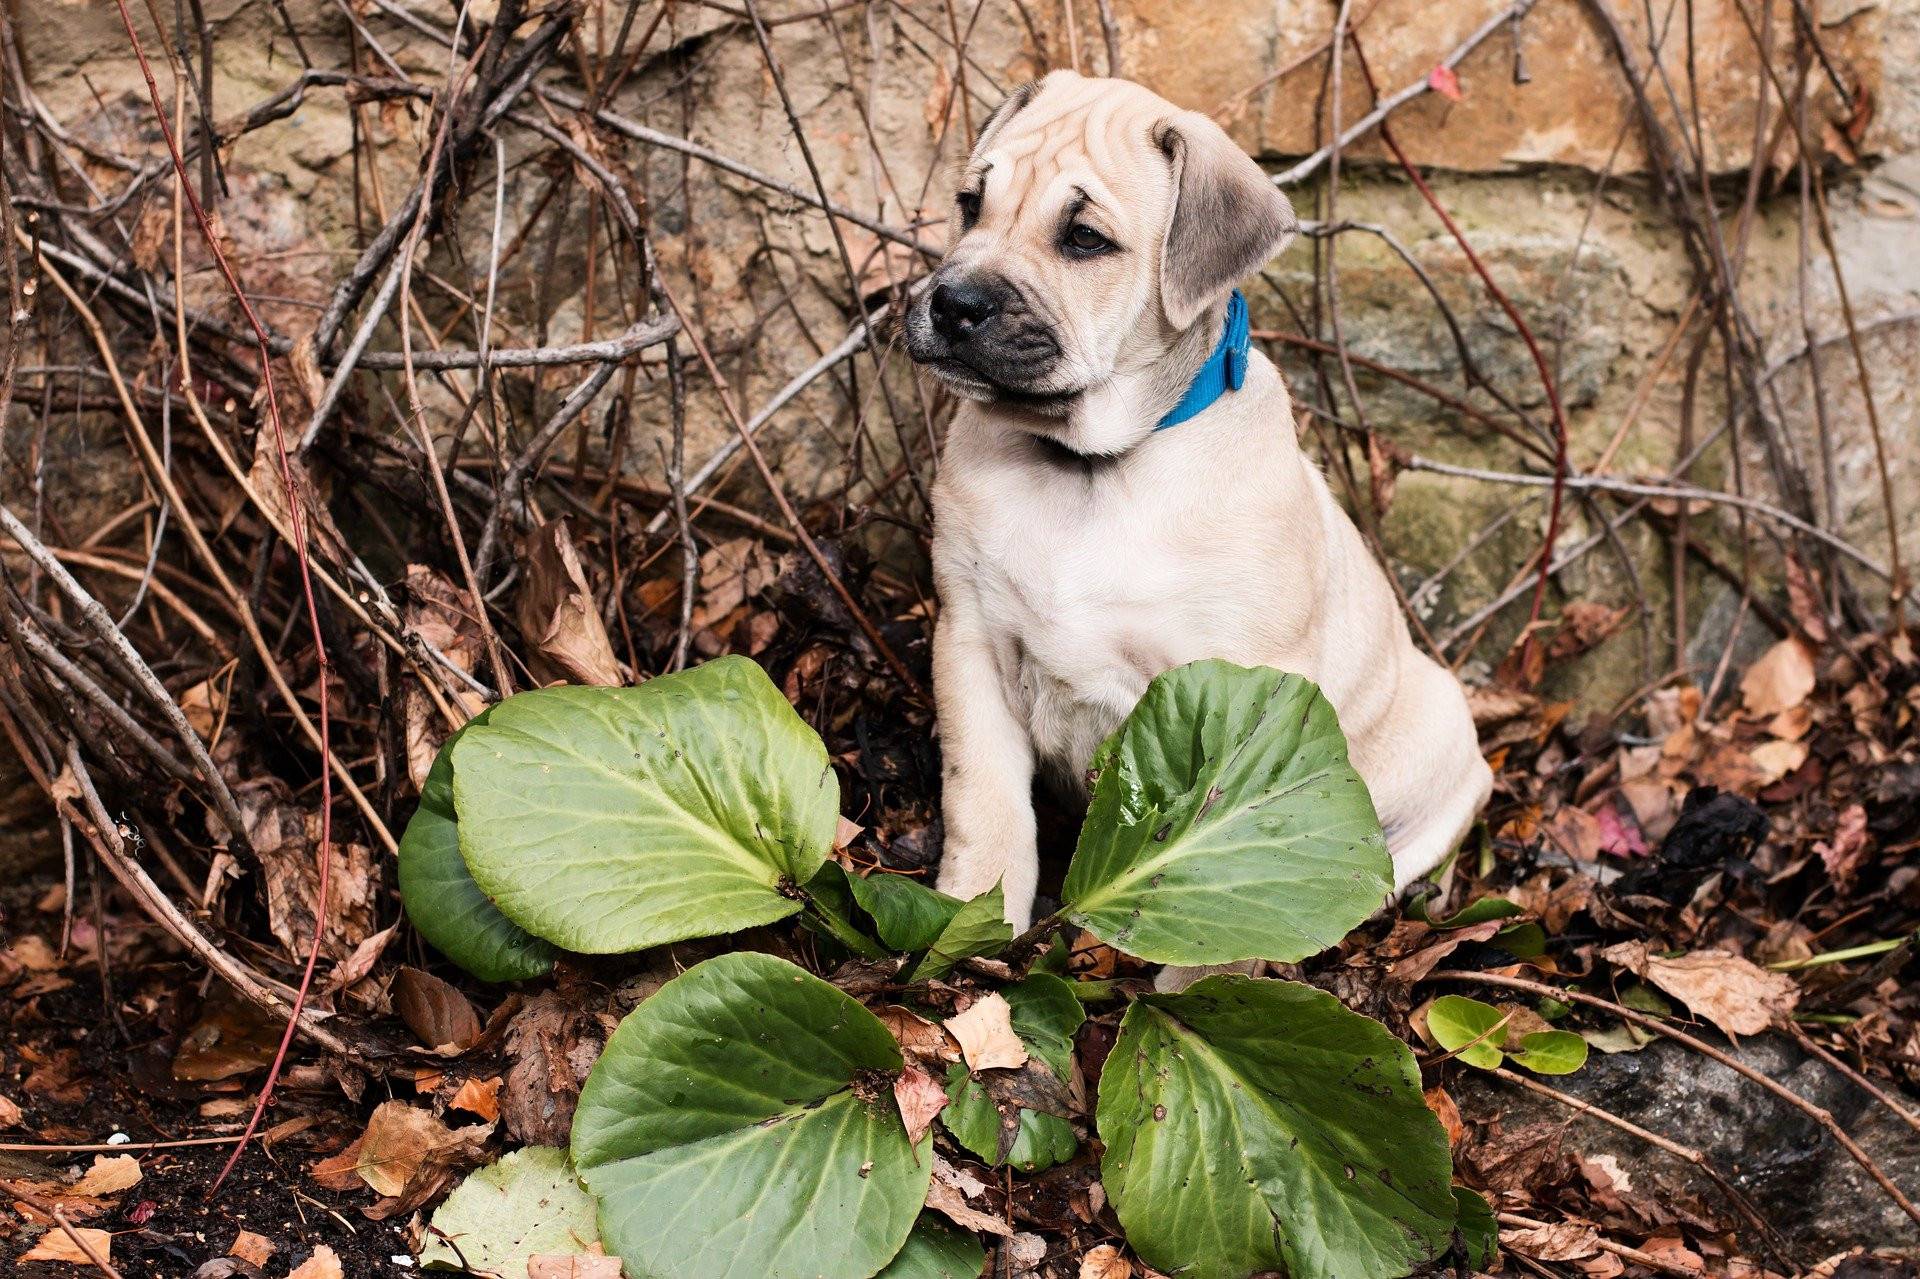 The 11 most poisonous plants for dogs rover izmirmasajfo